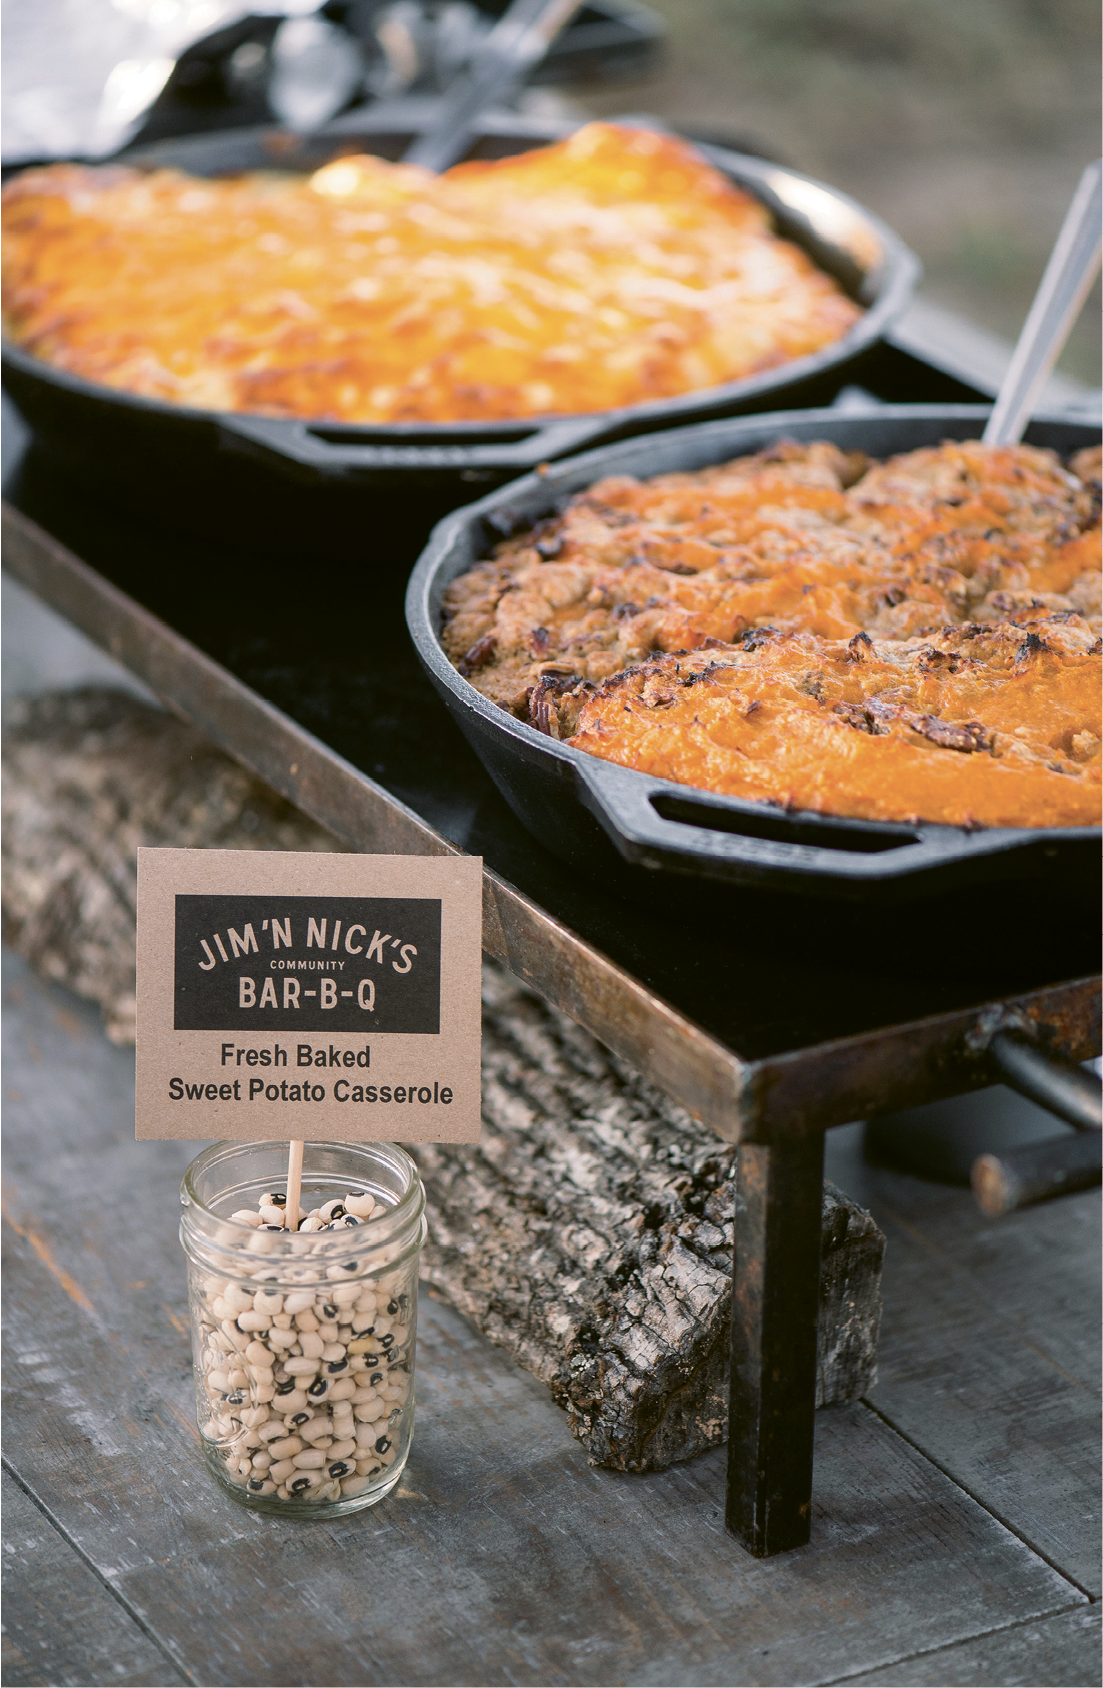 The cast-iron skillets and black-eyed pea menu markers on the buffet table fit right in with the event's down-home vibe.